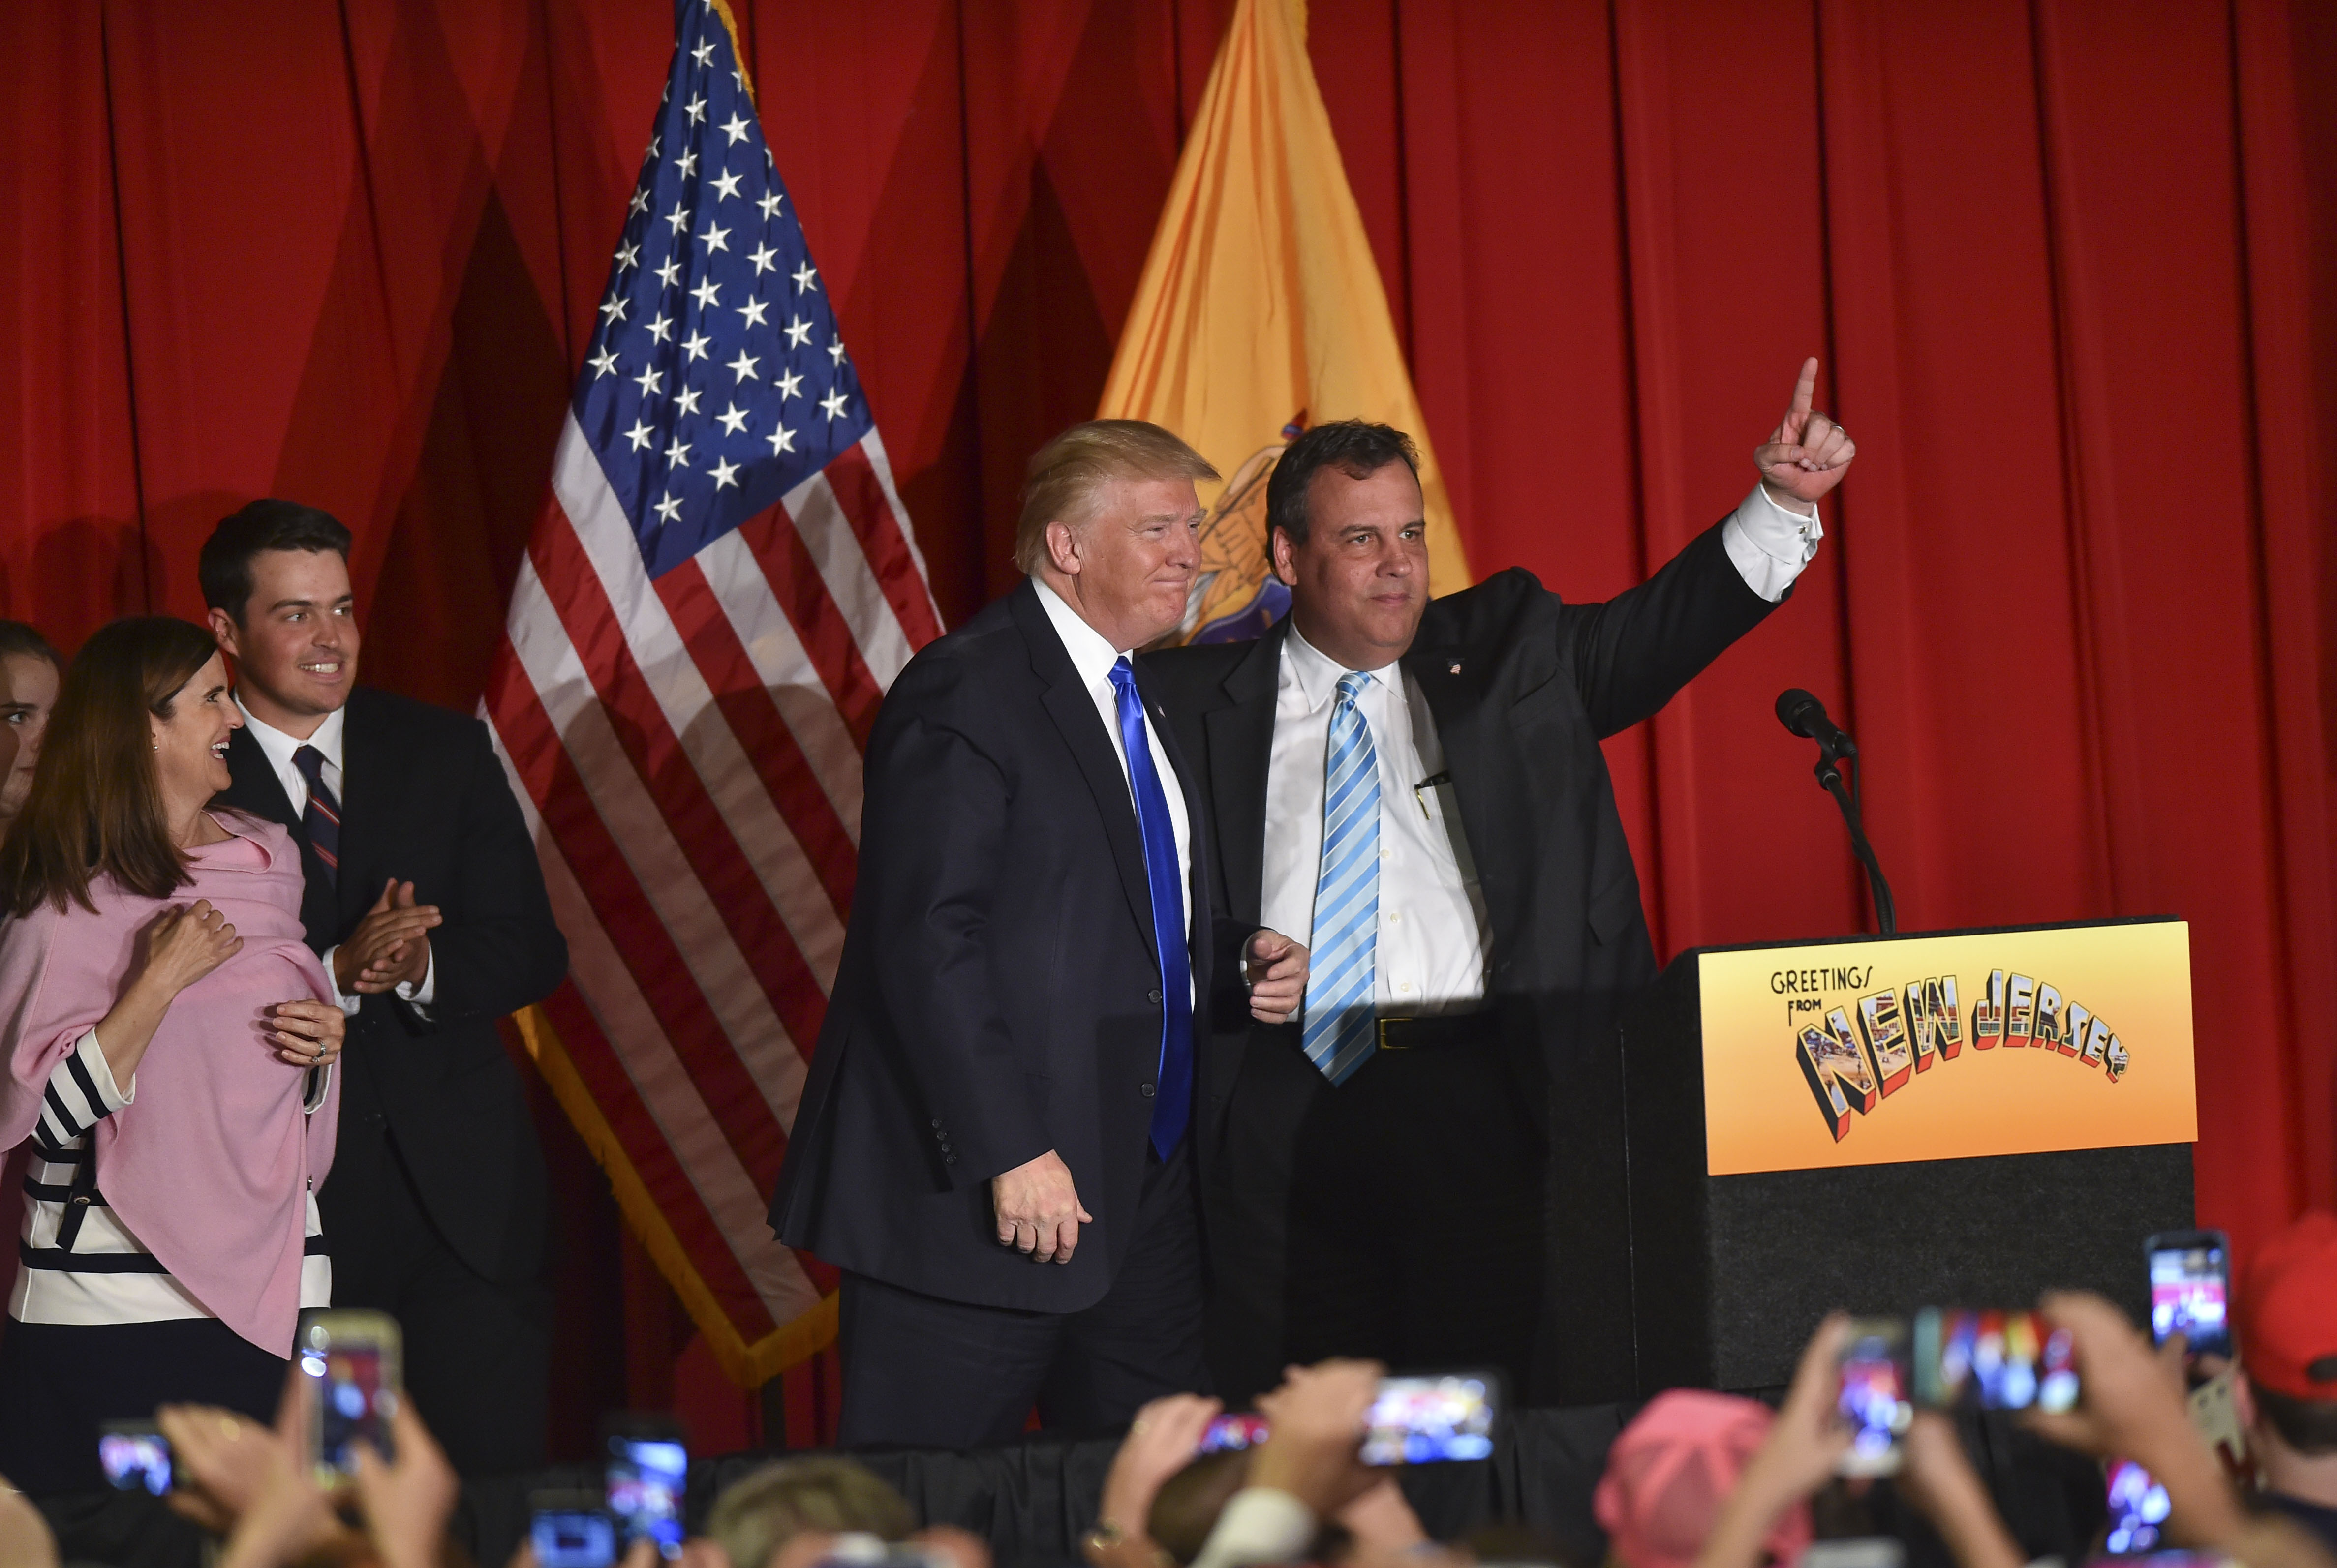 Republican presidential candidate Donald Trump and supporter, New Jersey Governor Chris Christie, (Ricky Carioti--The Washington Post via Getty Images)